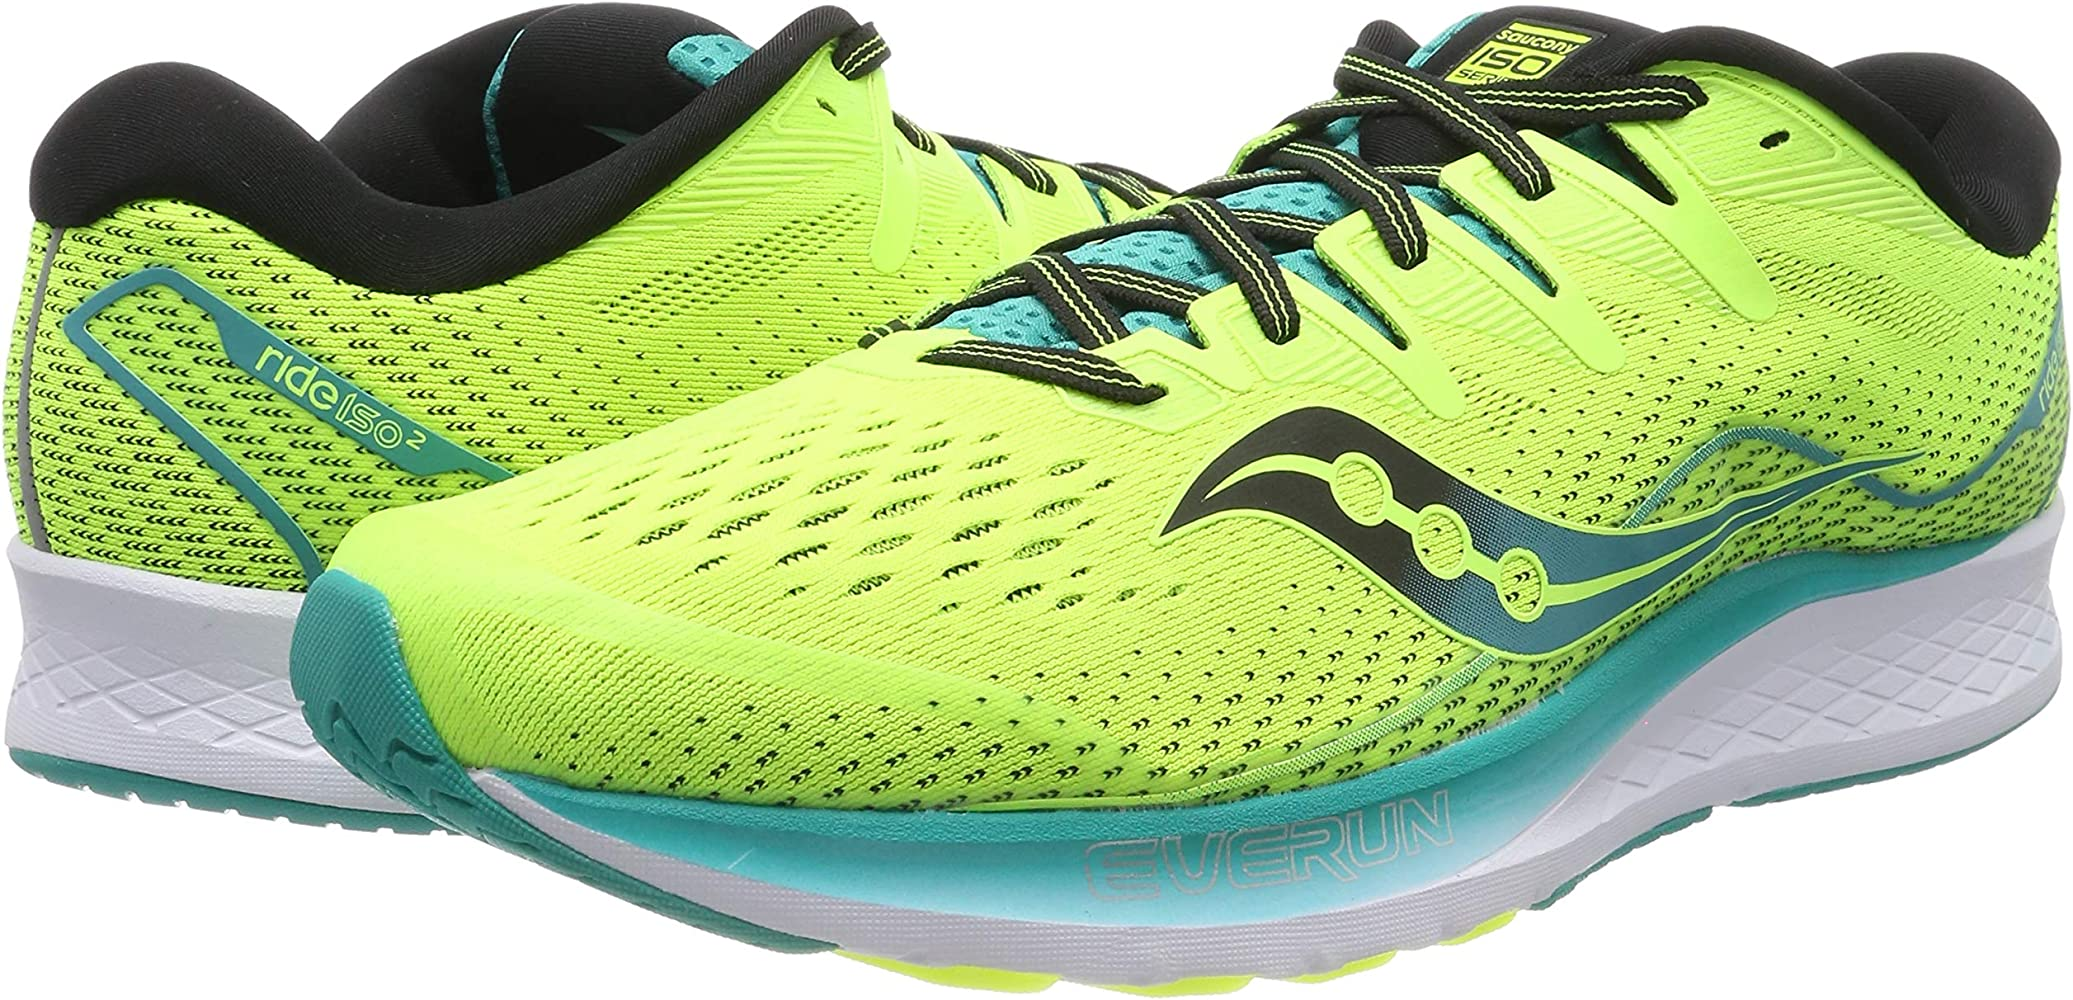 Saucony RIDE ISO 2, Zapatillas de Running por Hombre, Amarillo (Citron/Teal 36), 44 EU: Amazon.es: Zapatos y complementos